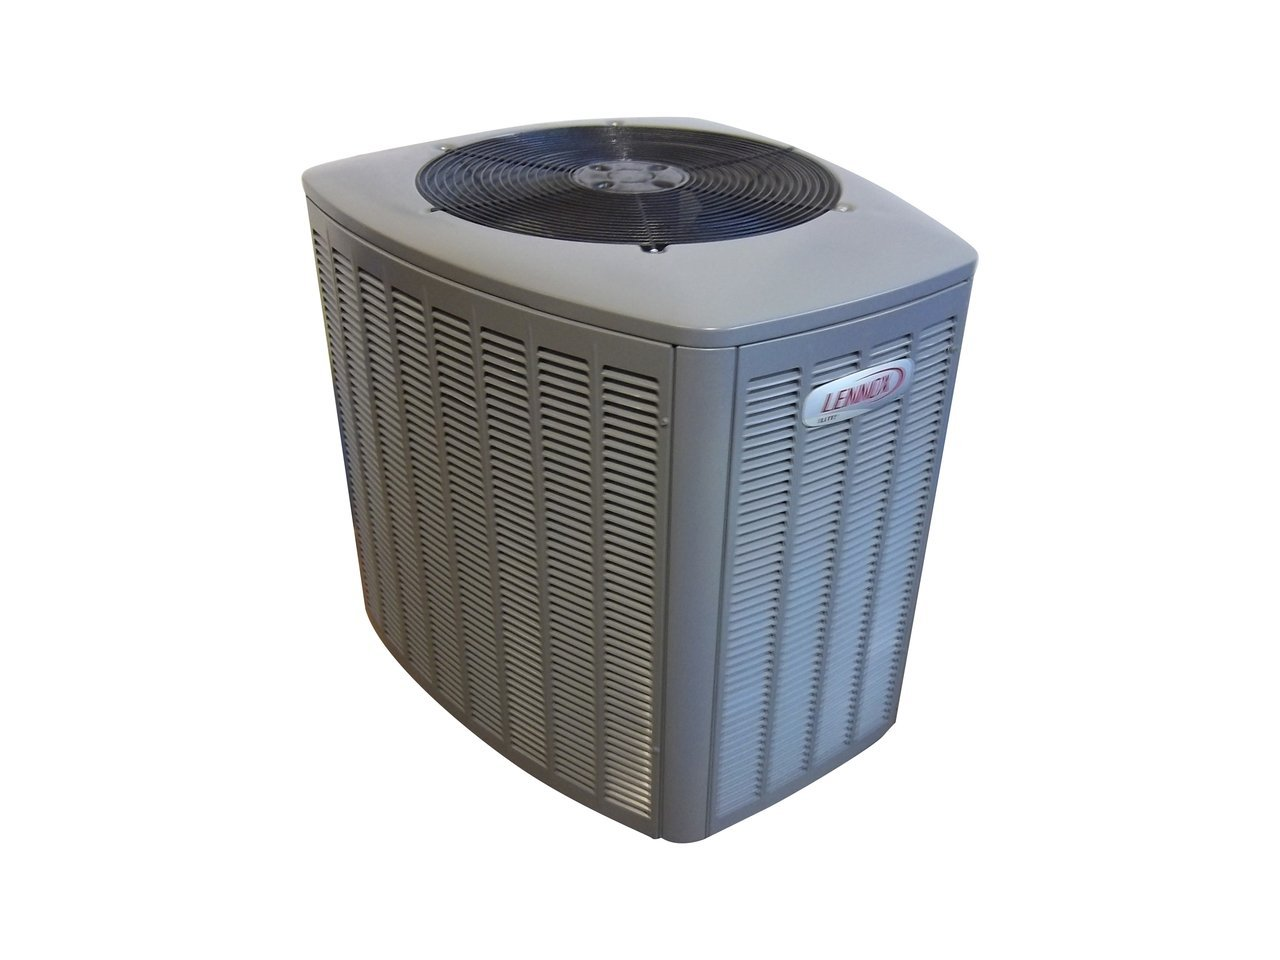 LENNOX Used Central Air Conditioner Condenser XP13-042-230-01 ACC-9241